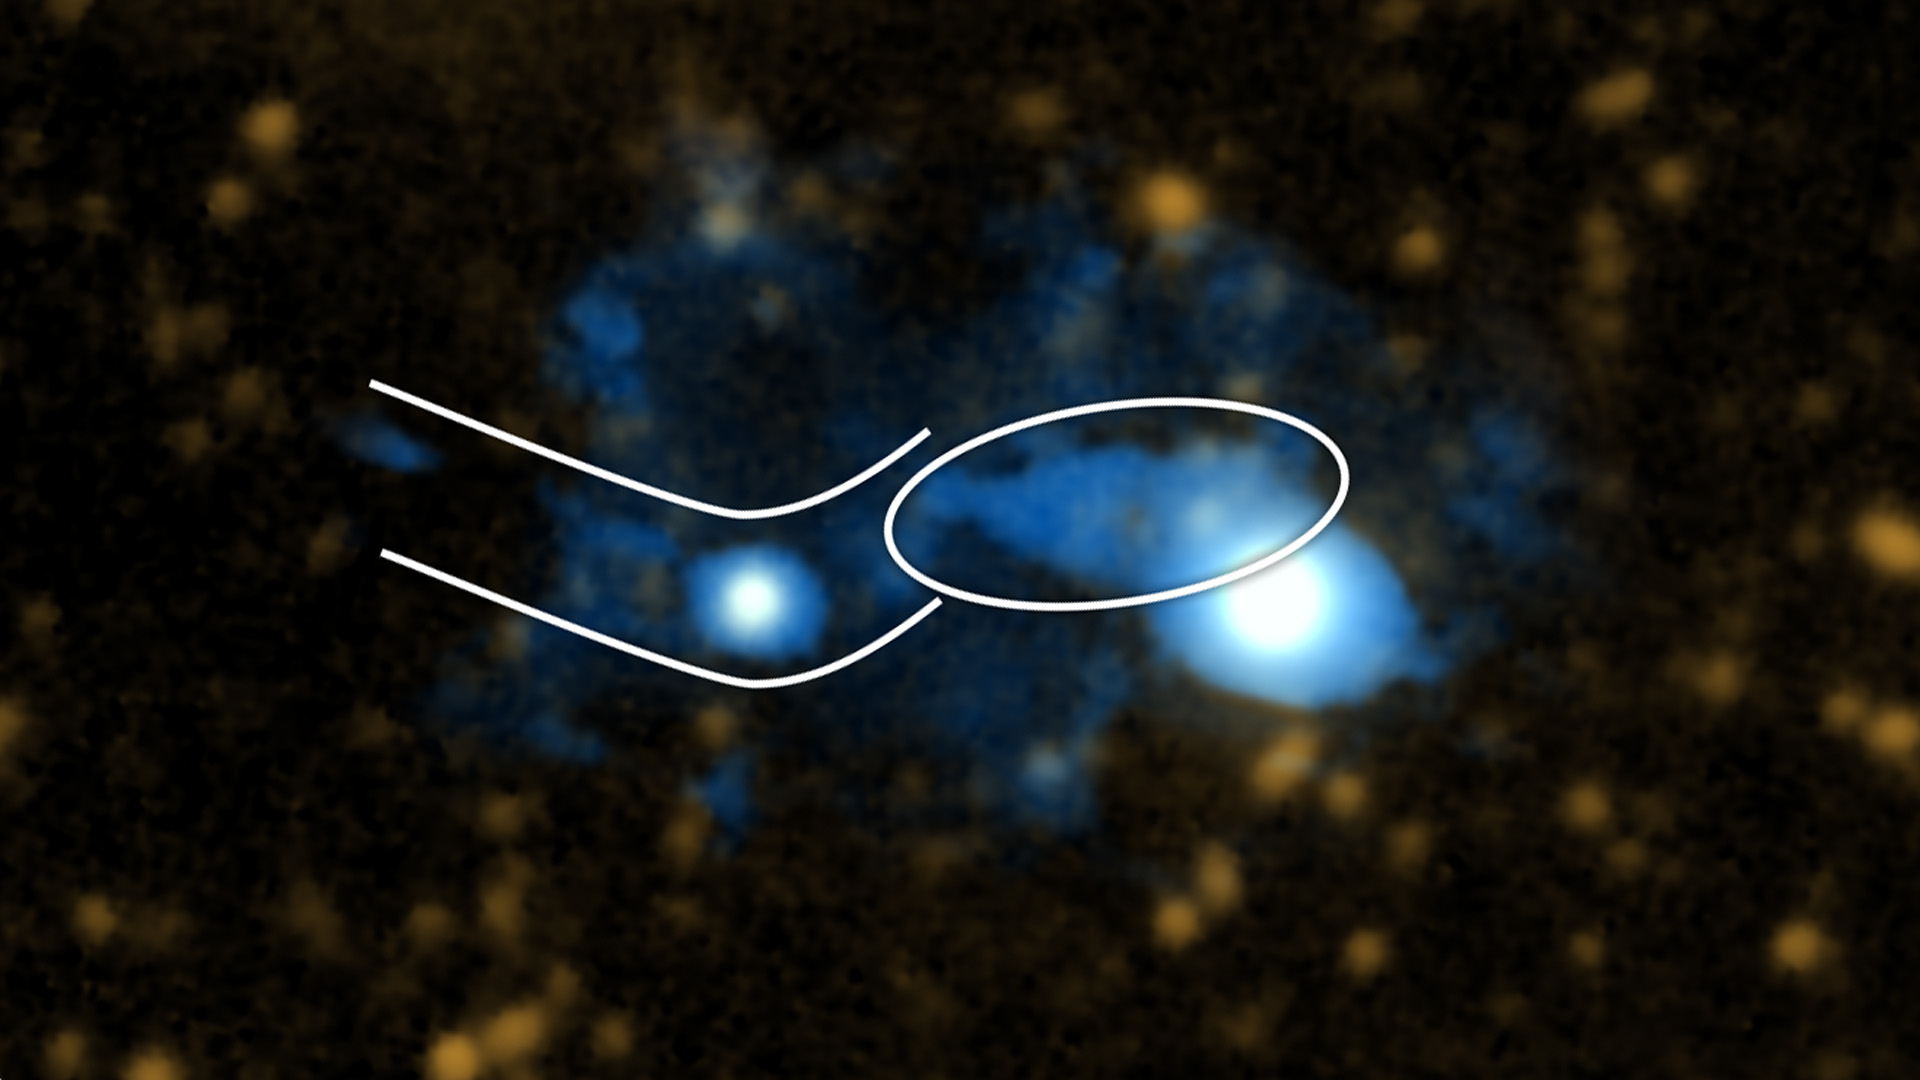 Protogalactic Disk in the Cosmic Web